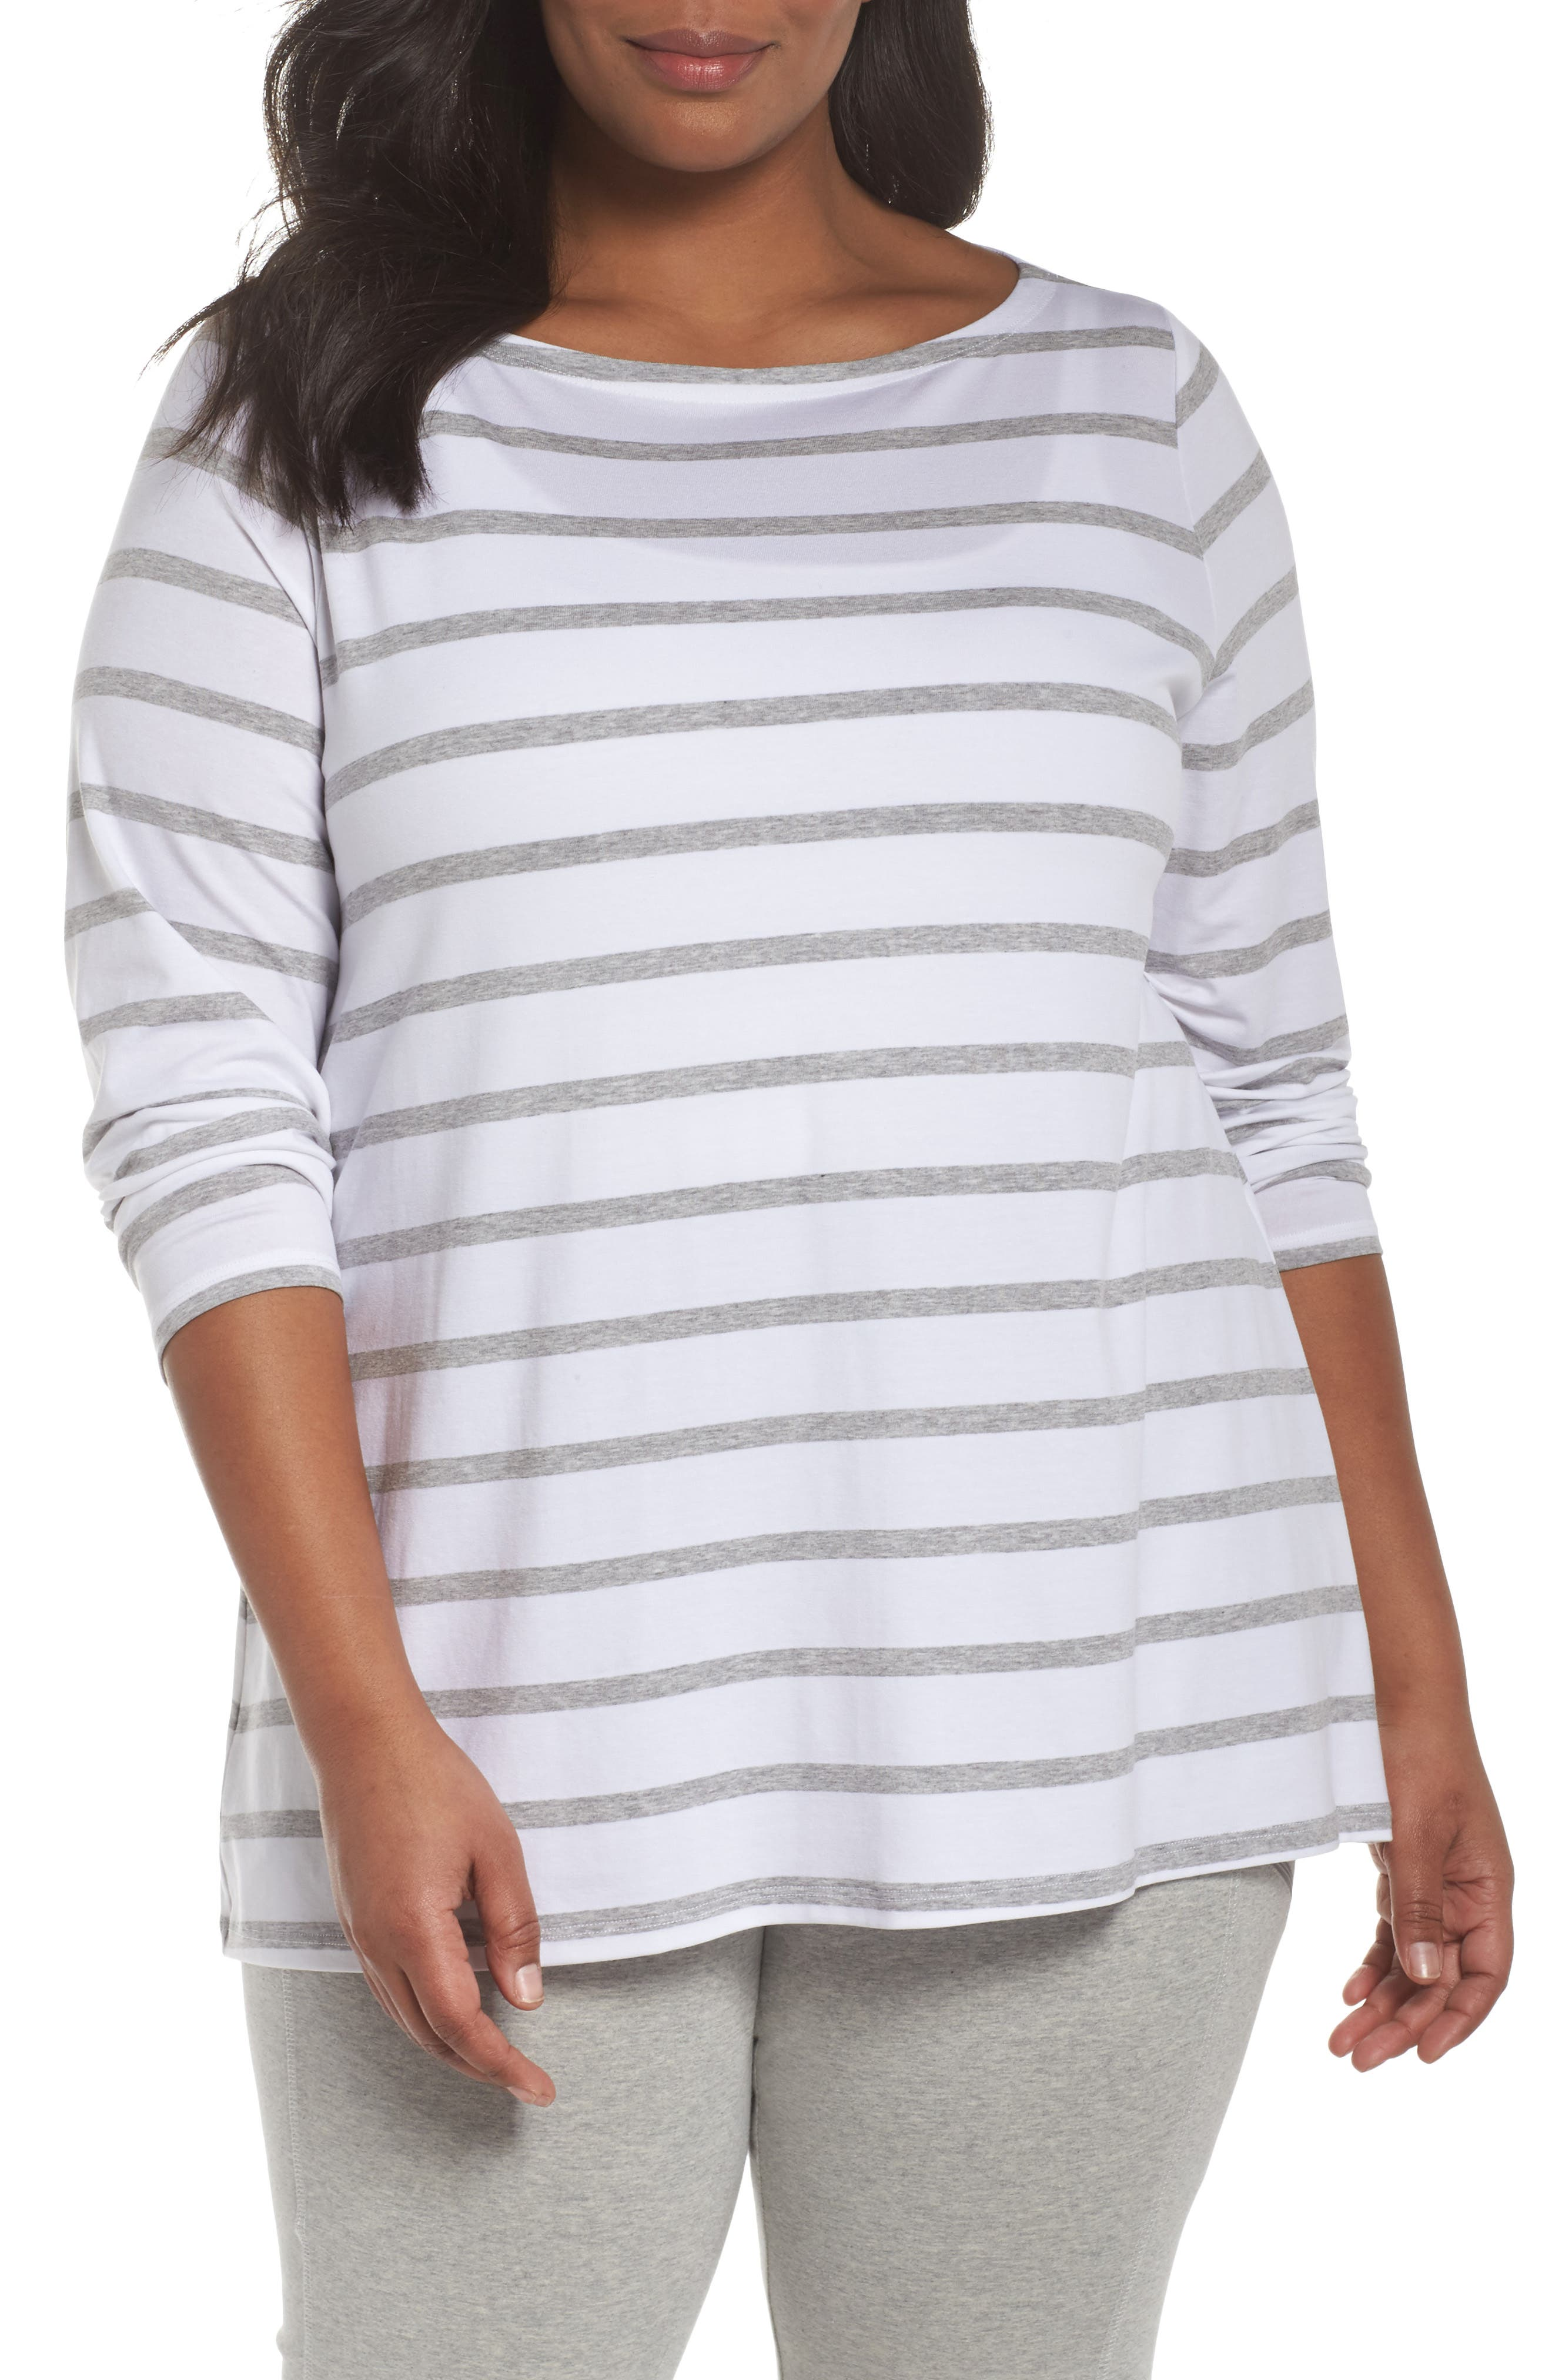 Stripe Stretch Tencel<sup>®</sup> Lyocell Top,                             Main thumbnail 1, color,                             White/ Dark Pearl